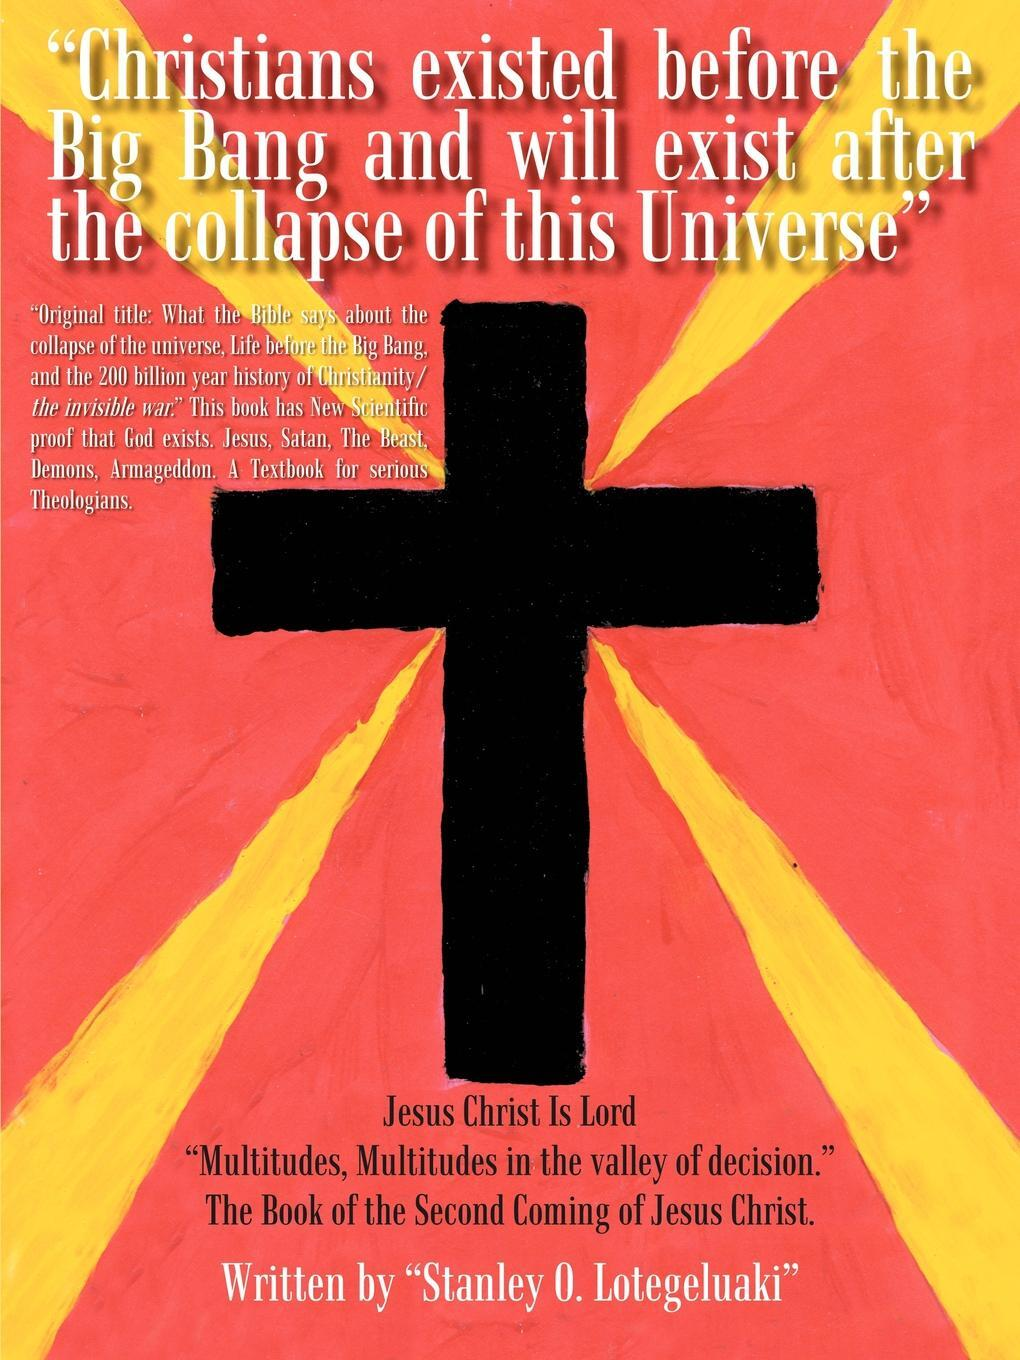 """Stanley O. Lotegeluaki. """"Christians existed before the Big Bang and will exist after the collapse of this Universe"""""""